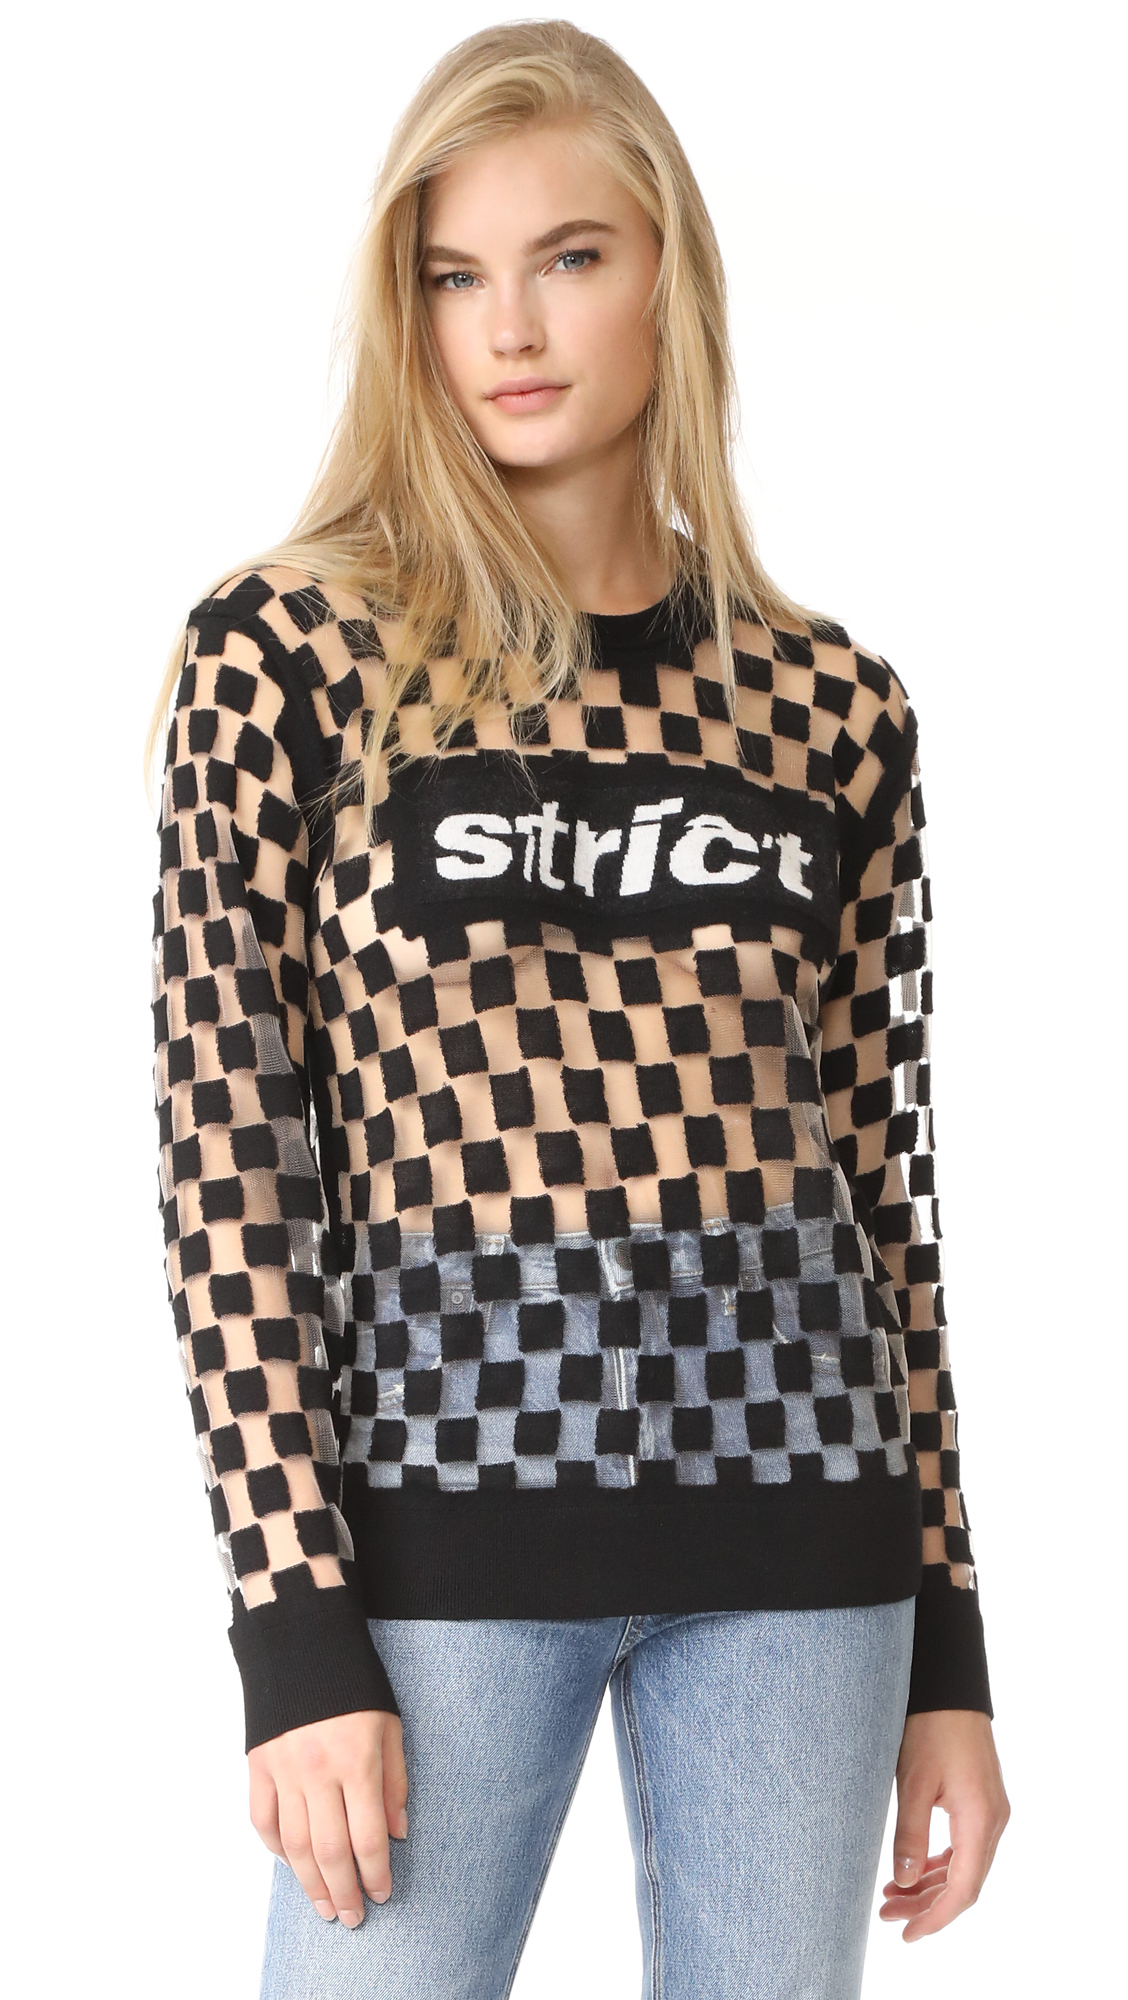 Alexander Wang Burnout Checkerboard Strict Pullover - Black And White